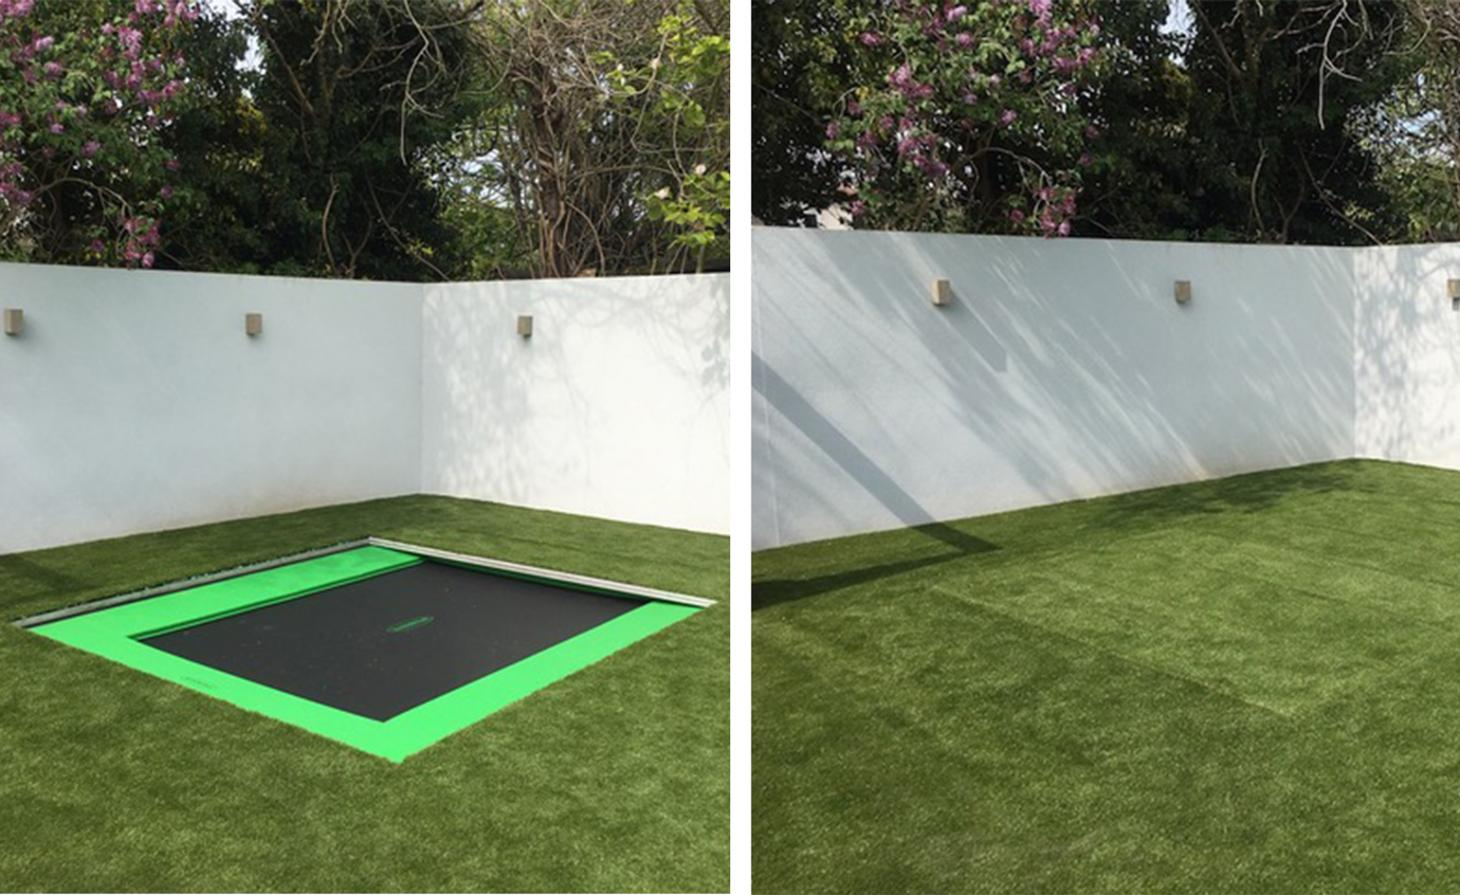 Trampoline in ground with grass half covering it